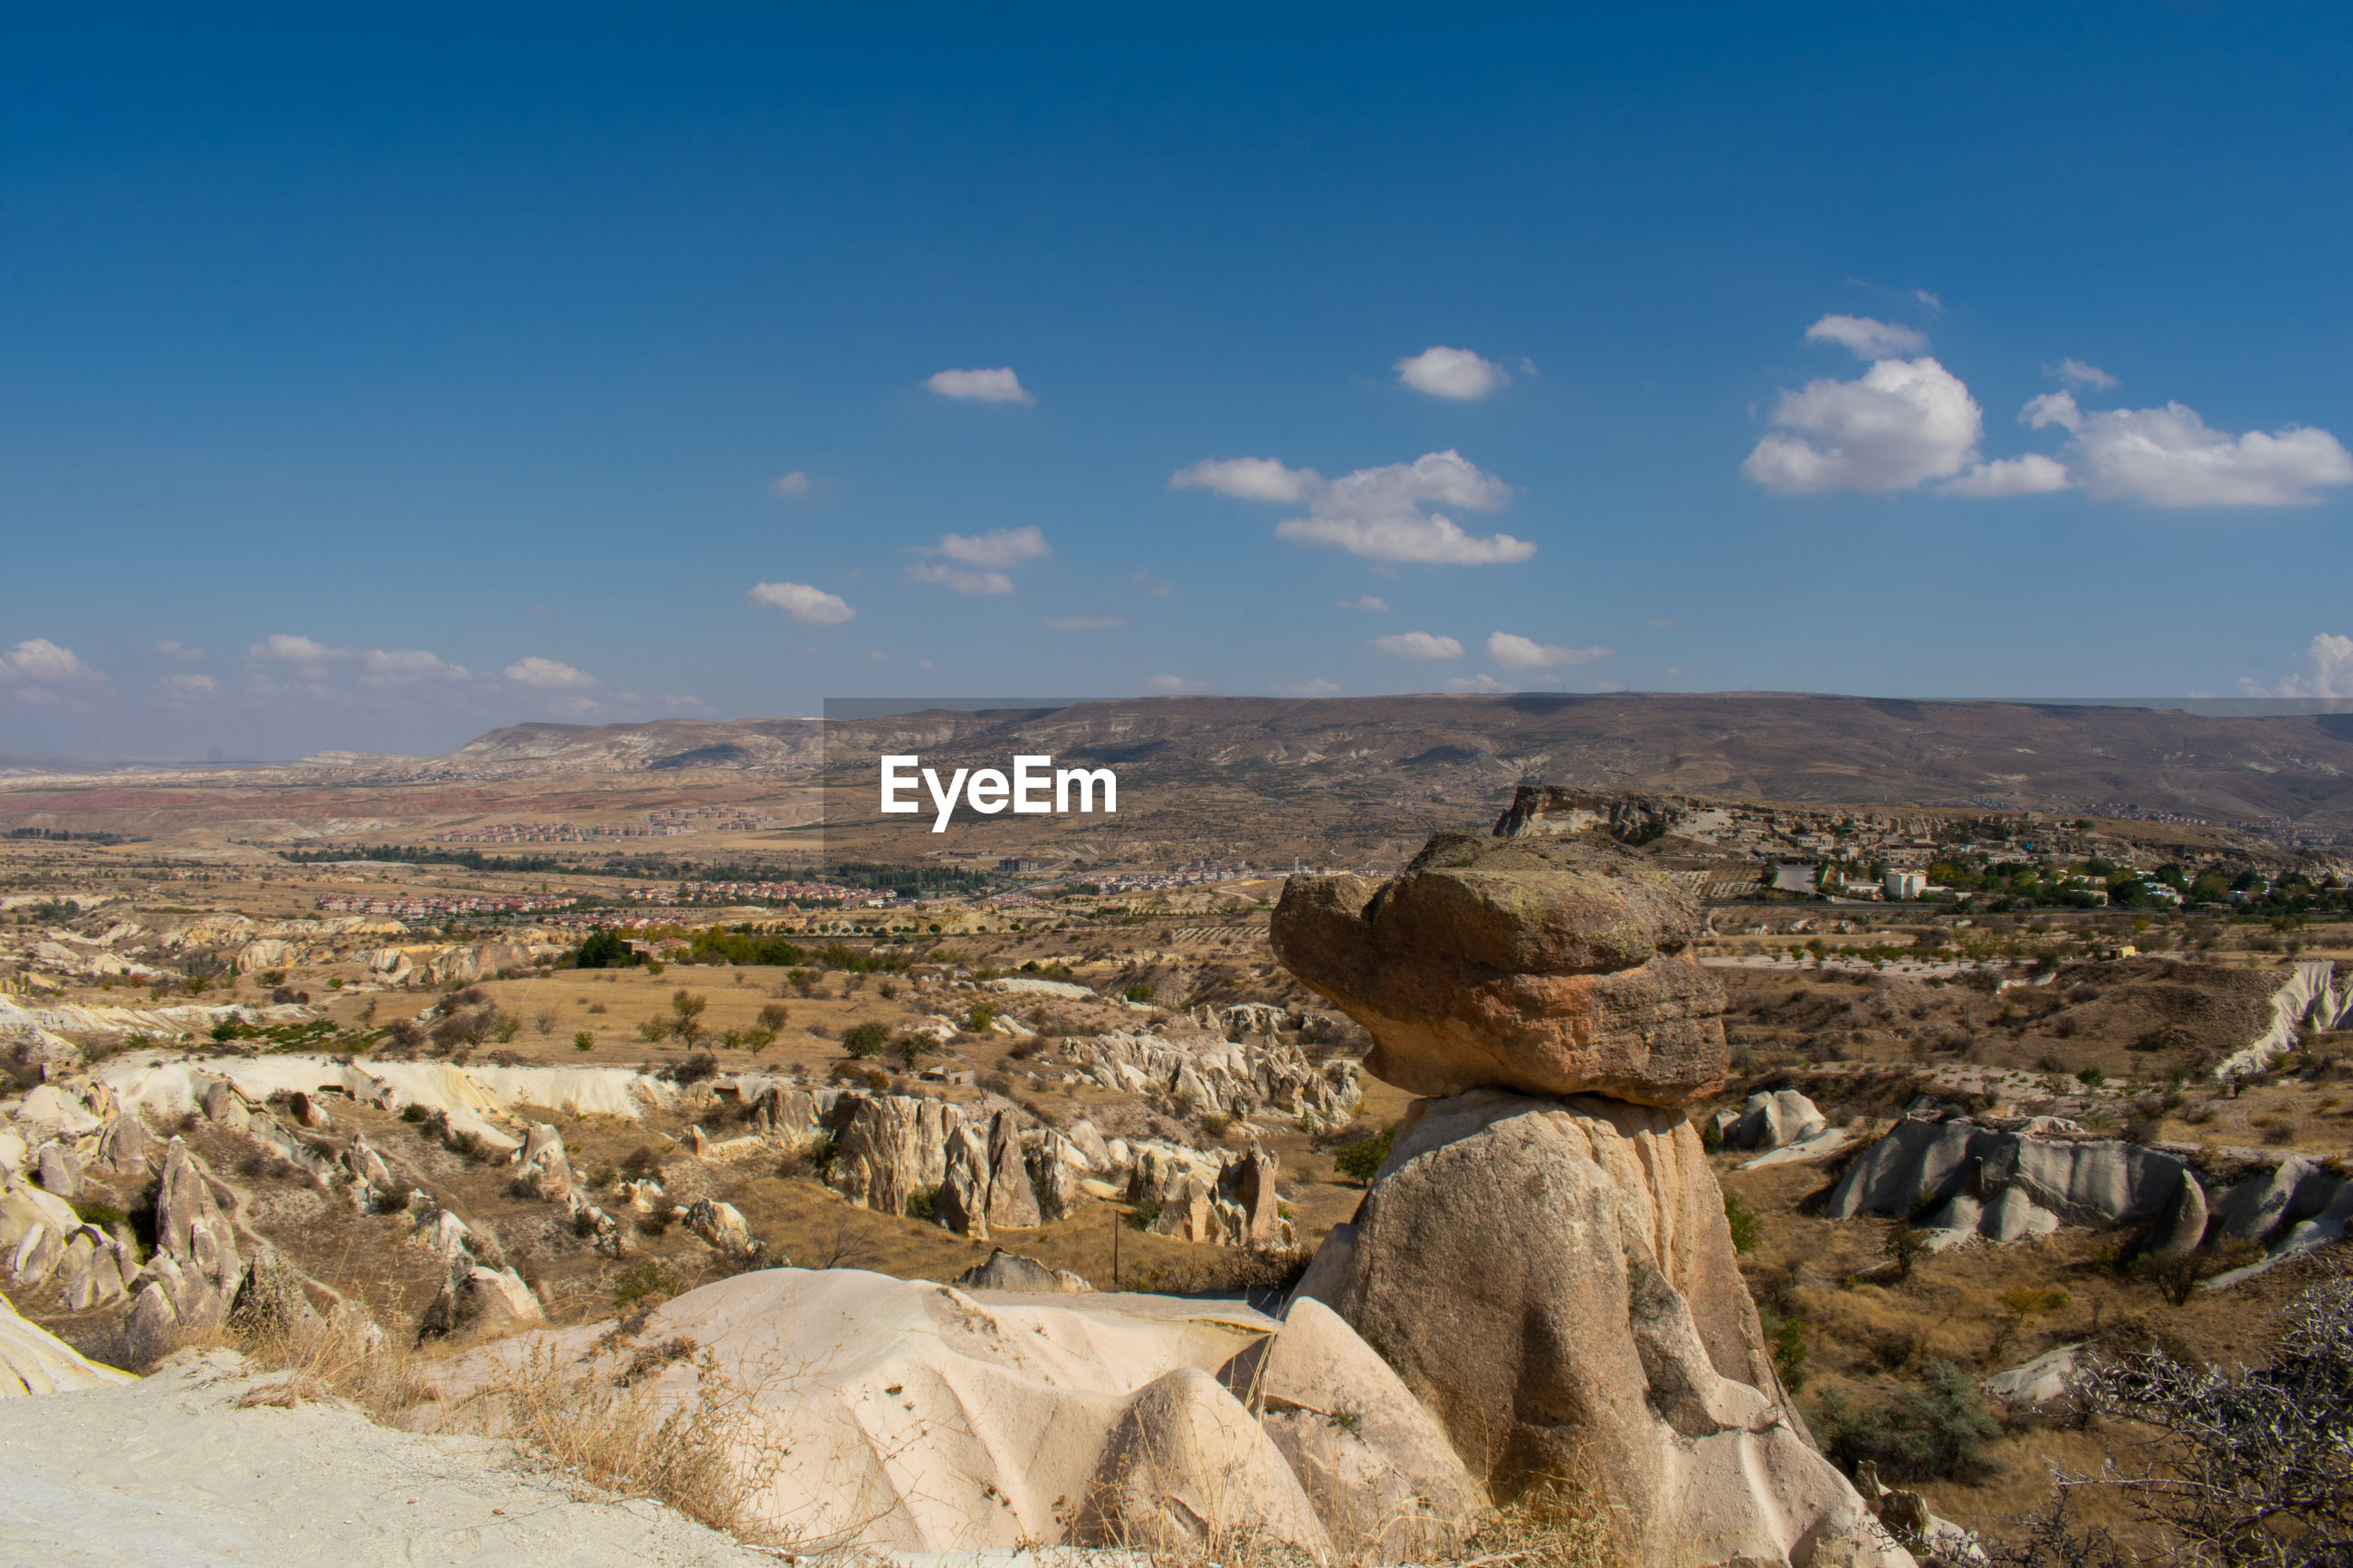 SCENIC VIEW OF ROCKS ON LANDSCAPE AGAINST SKY